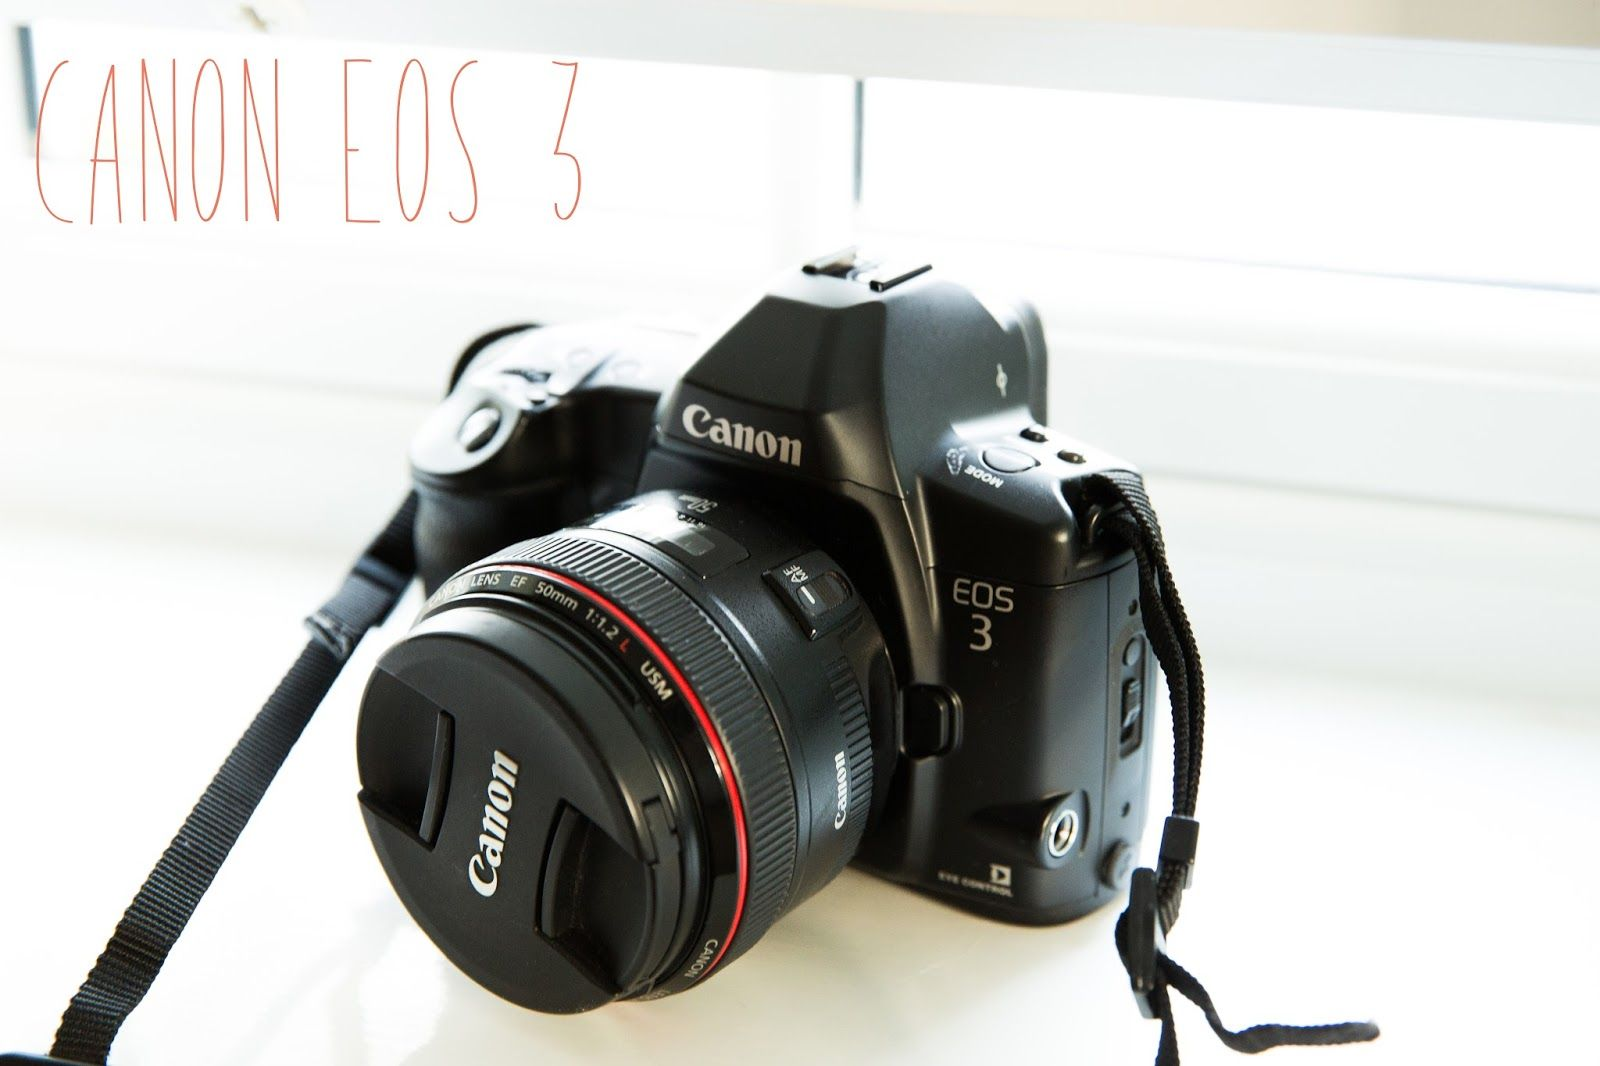 canon eos 3 users guide the basics 35mm film photography for rh pinterest com canon eos 3 instruction manual Canon EOS T3 vs T3i